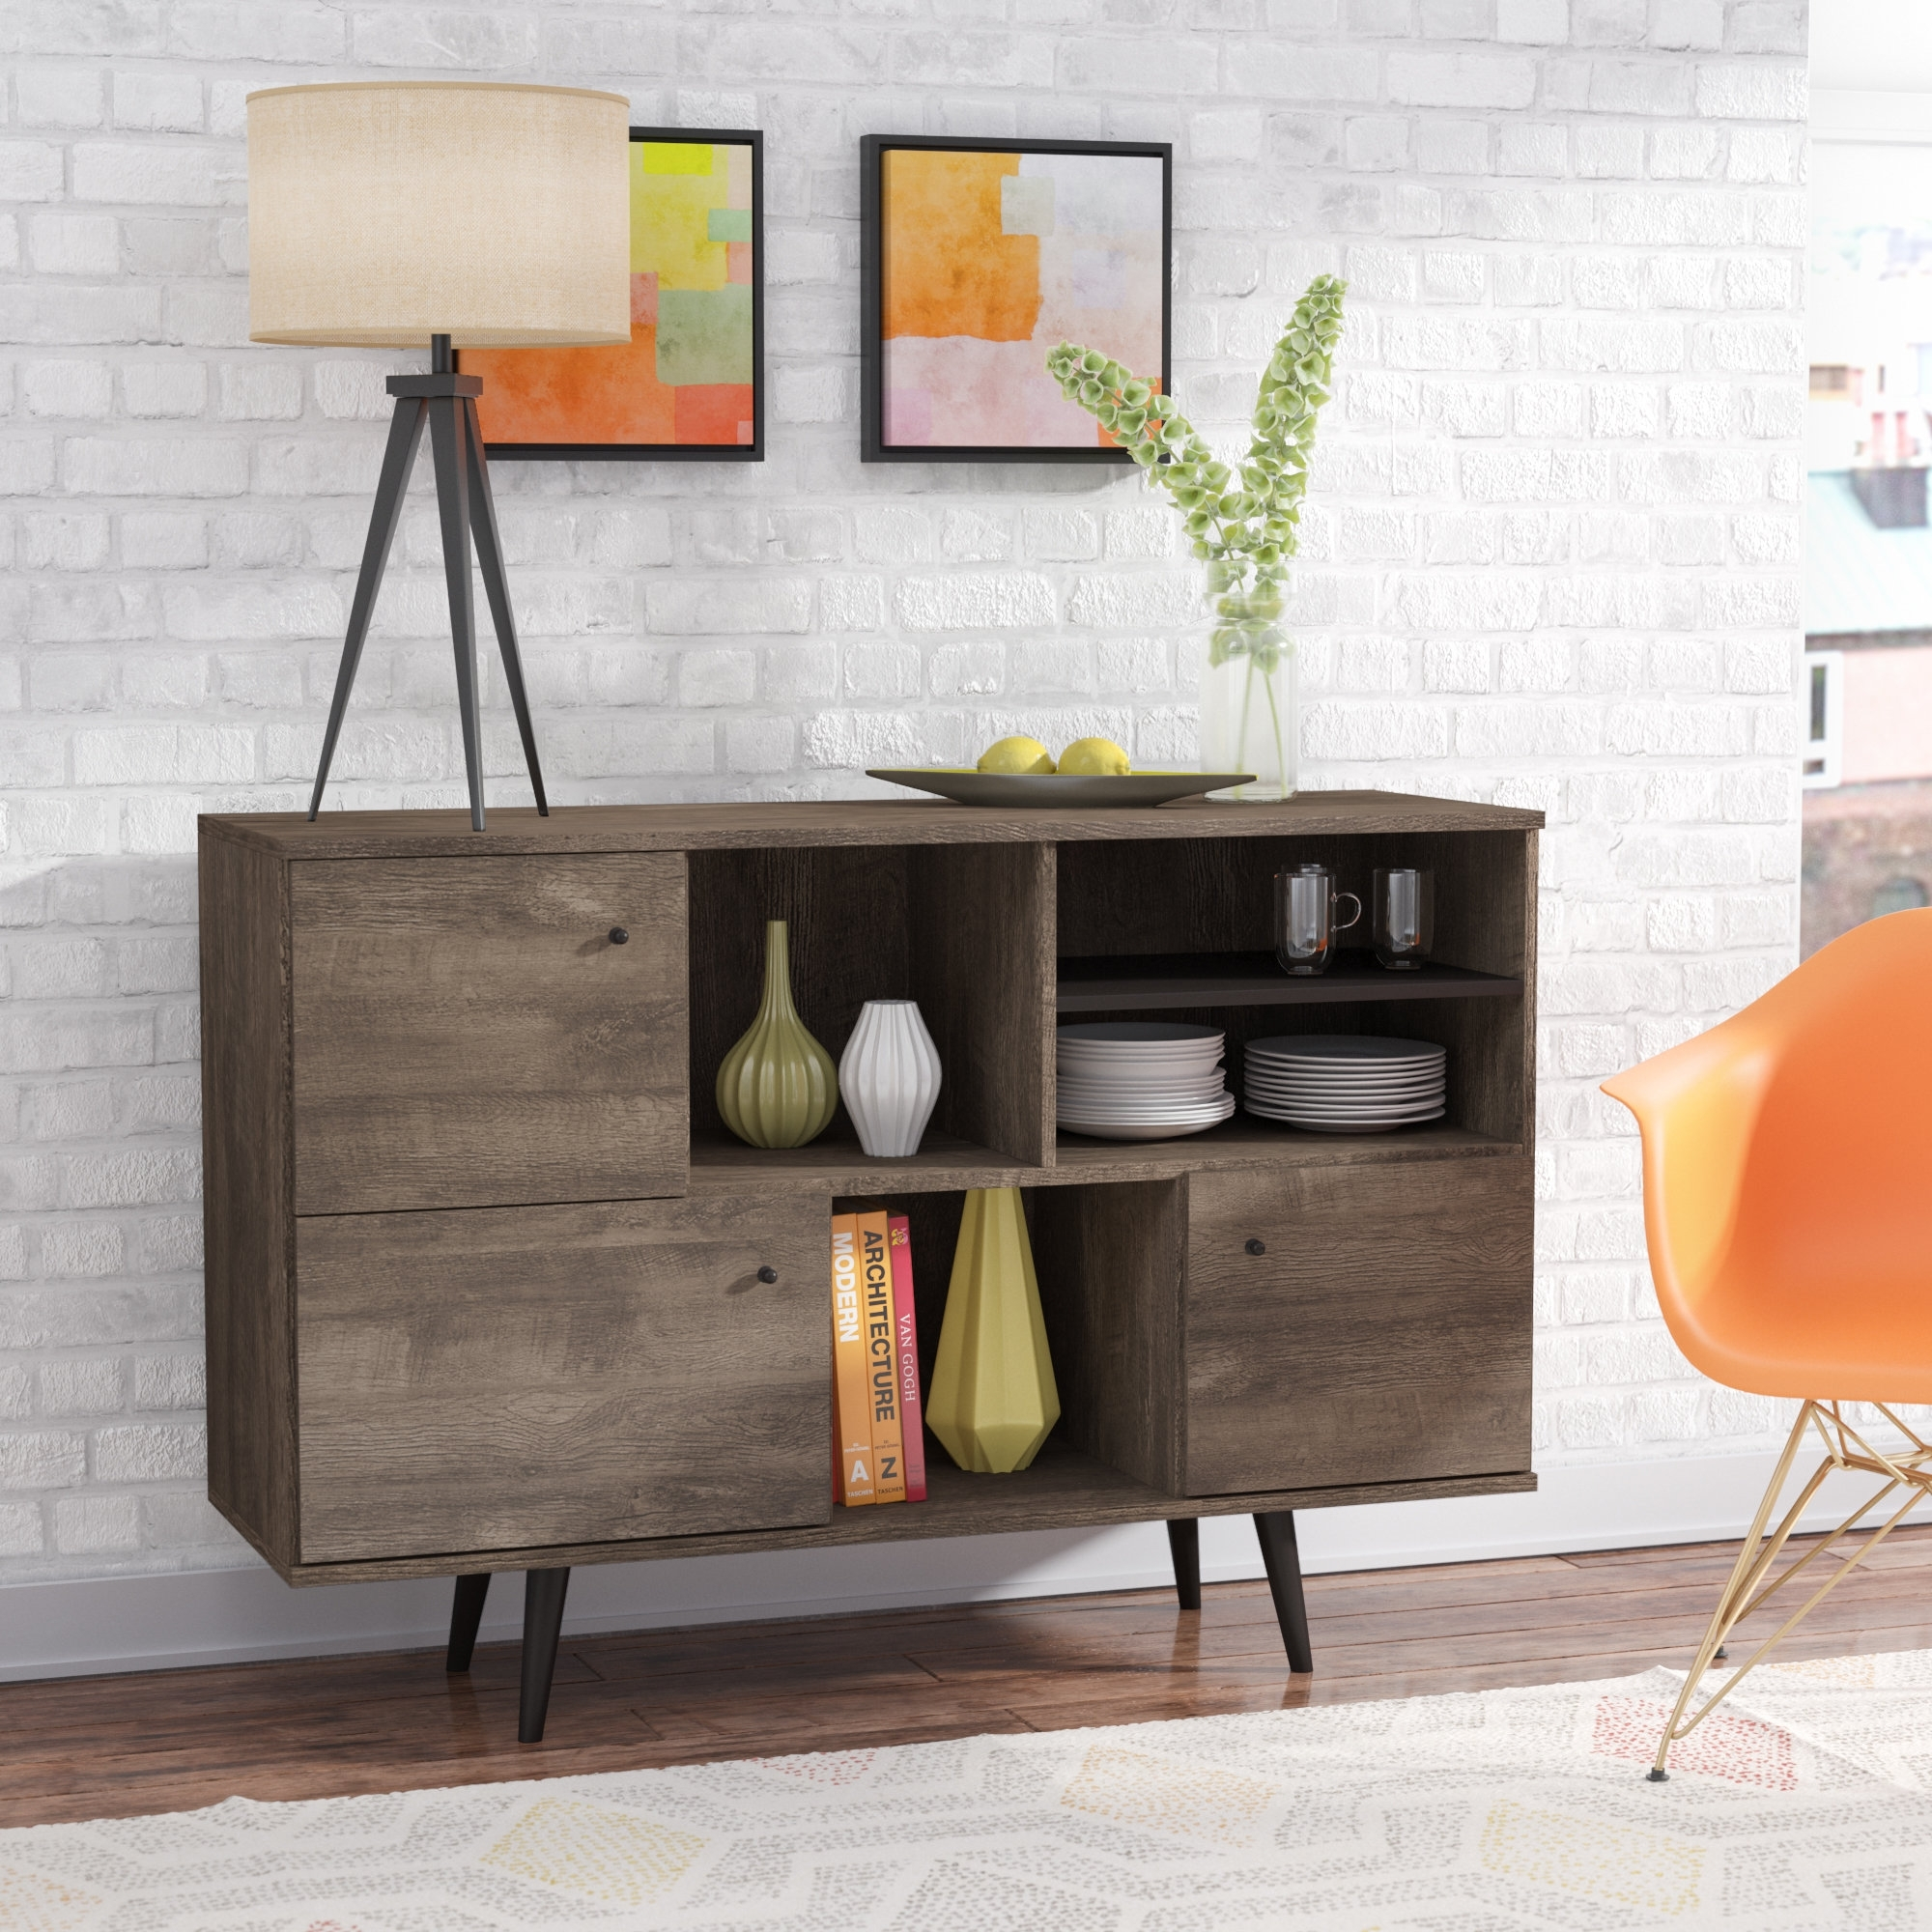 Extra Long Buffet | Wayfair within Solar Refinement Sideboards (Image 11 of 30)